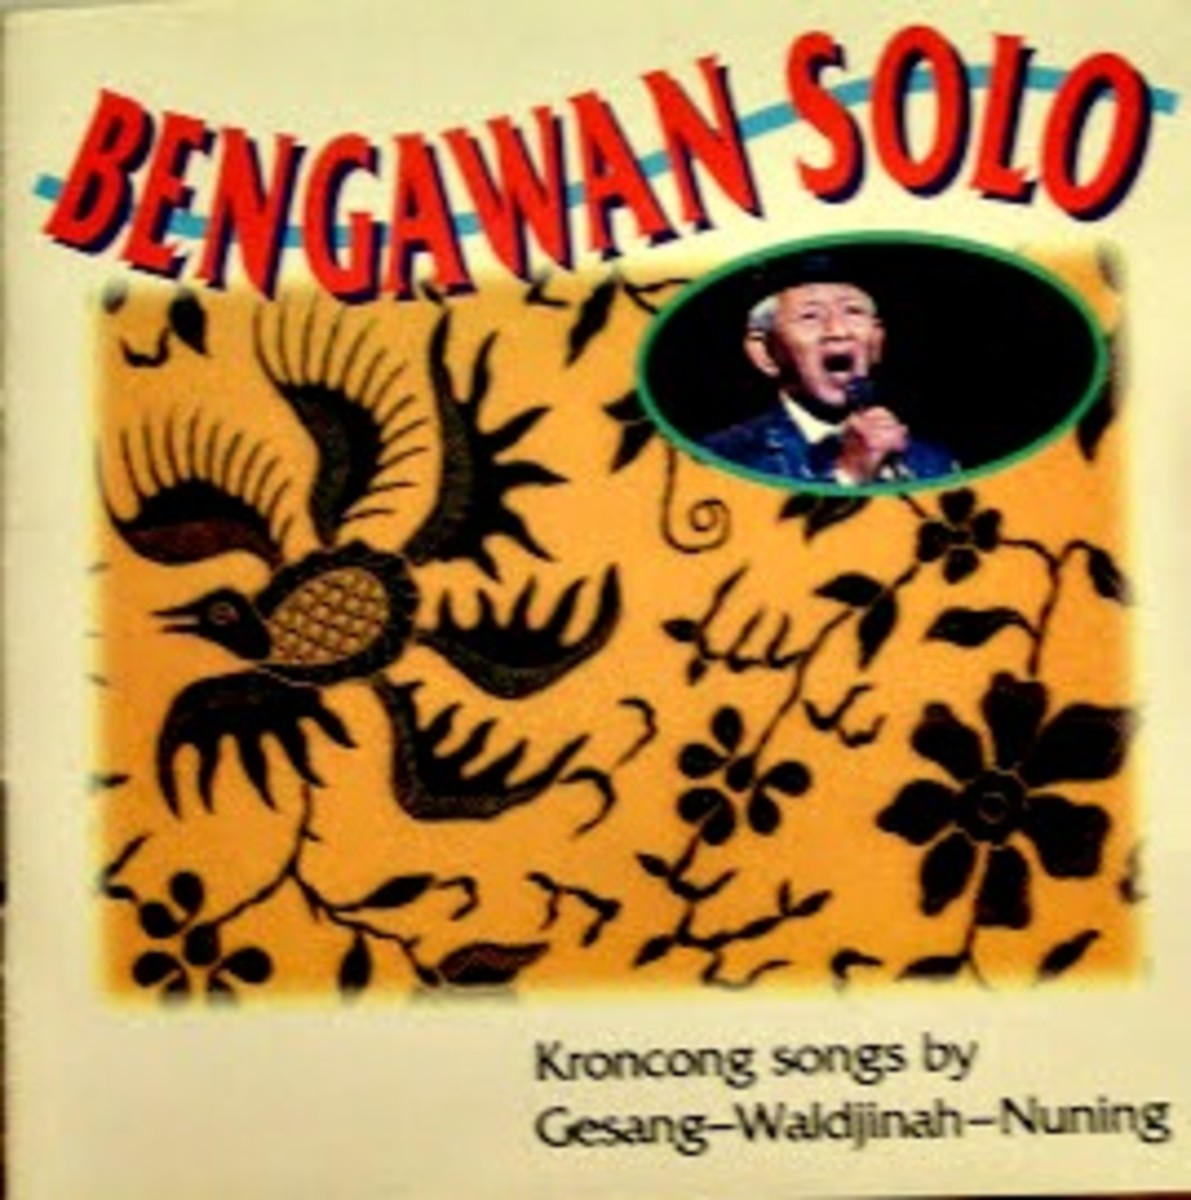 Front cover of the cd jacket